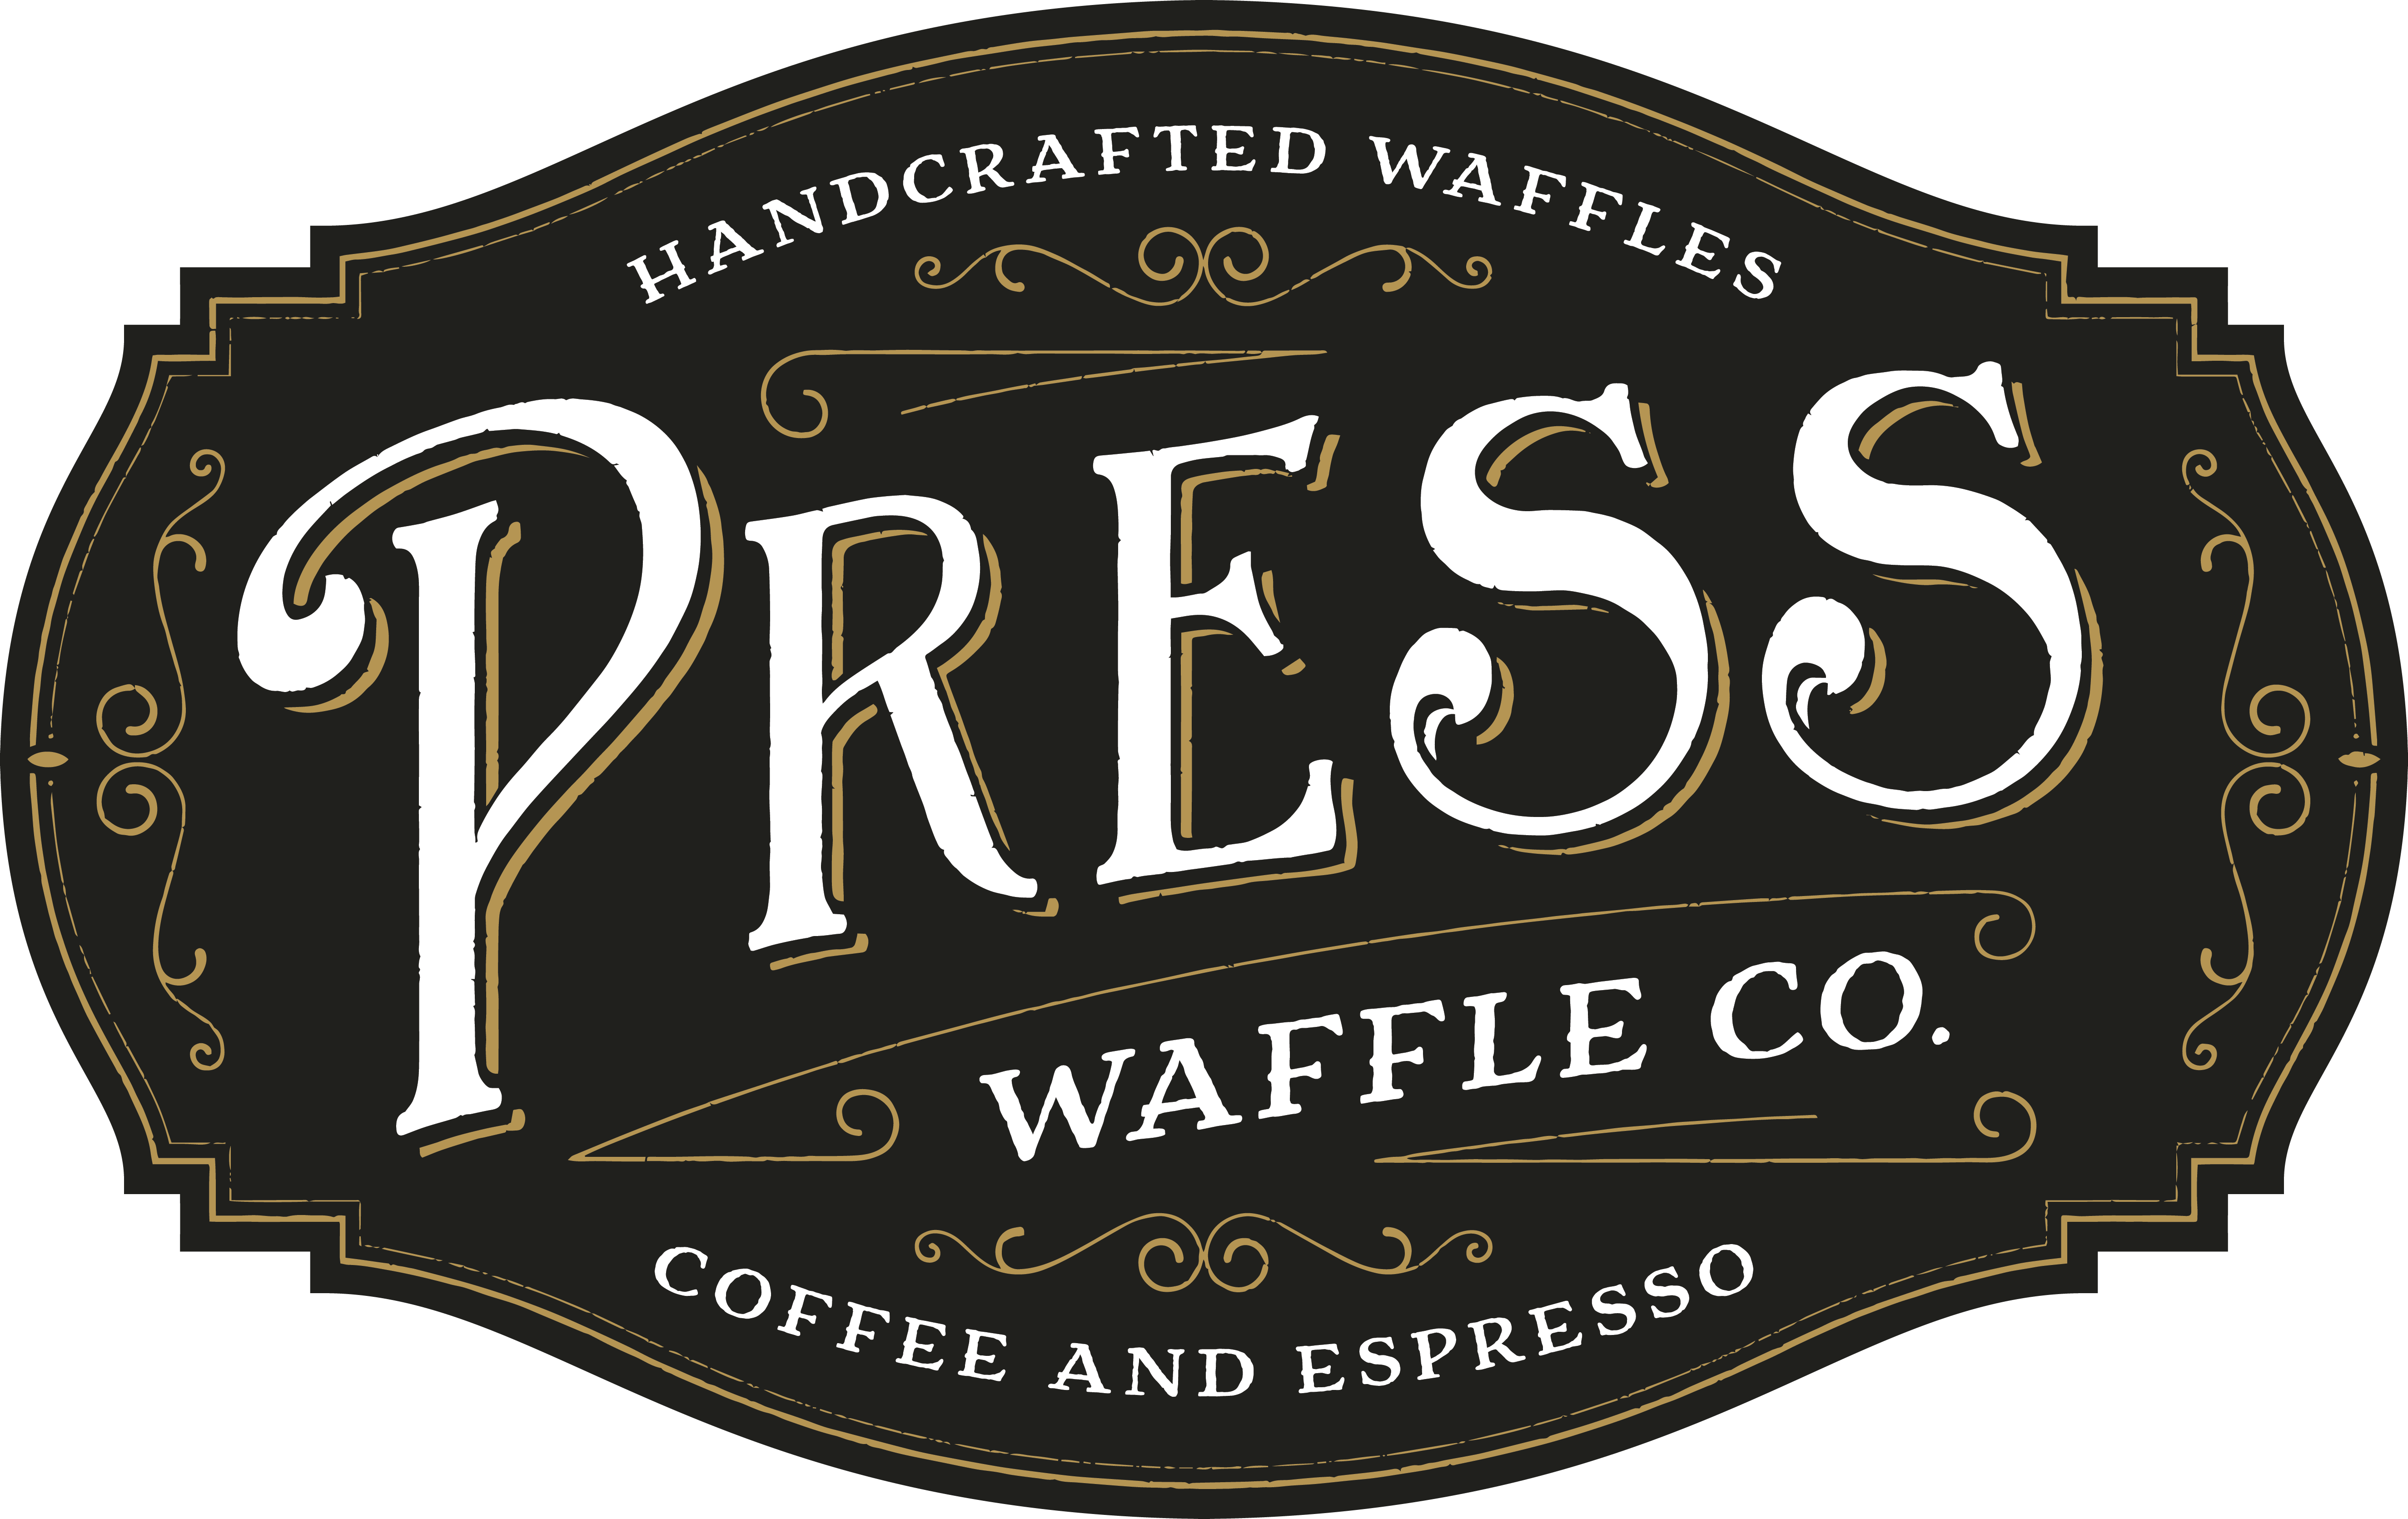 Press Waffle Co. Logo and Branding